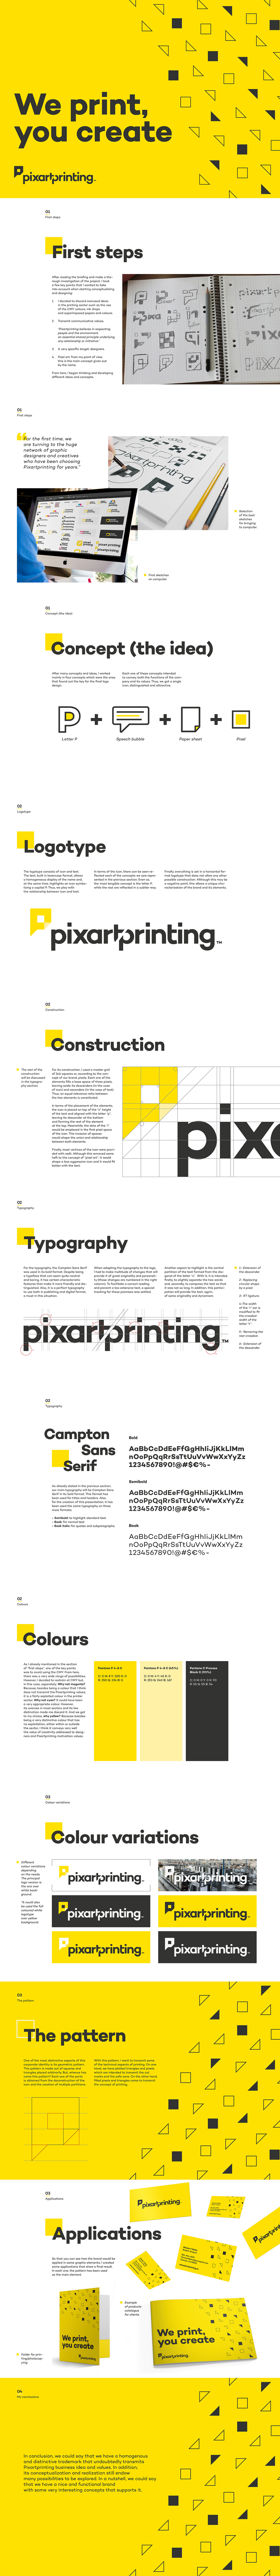 Pixartprinting guidelines attached 1